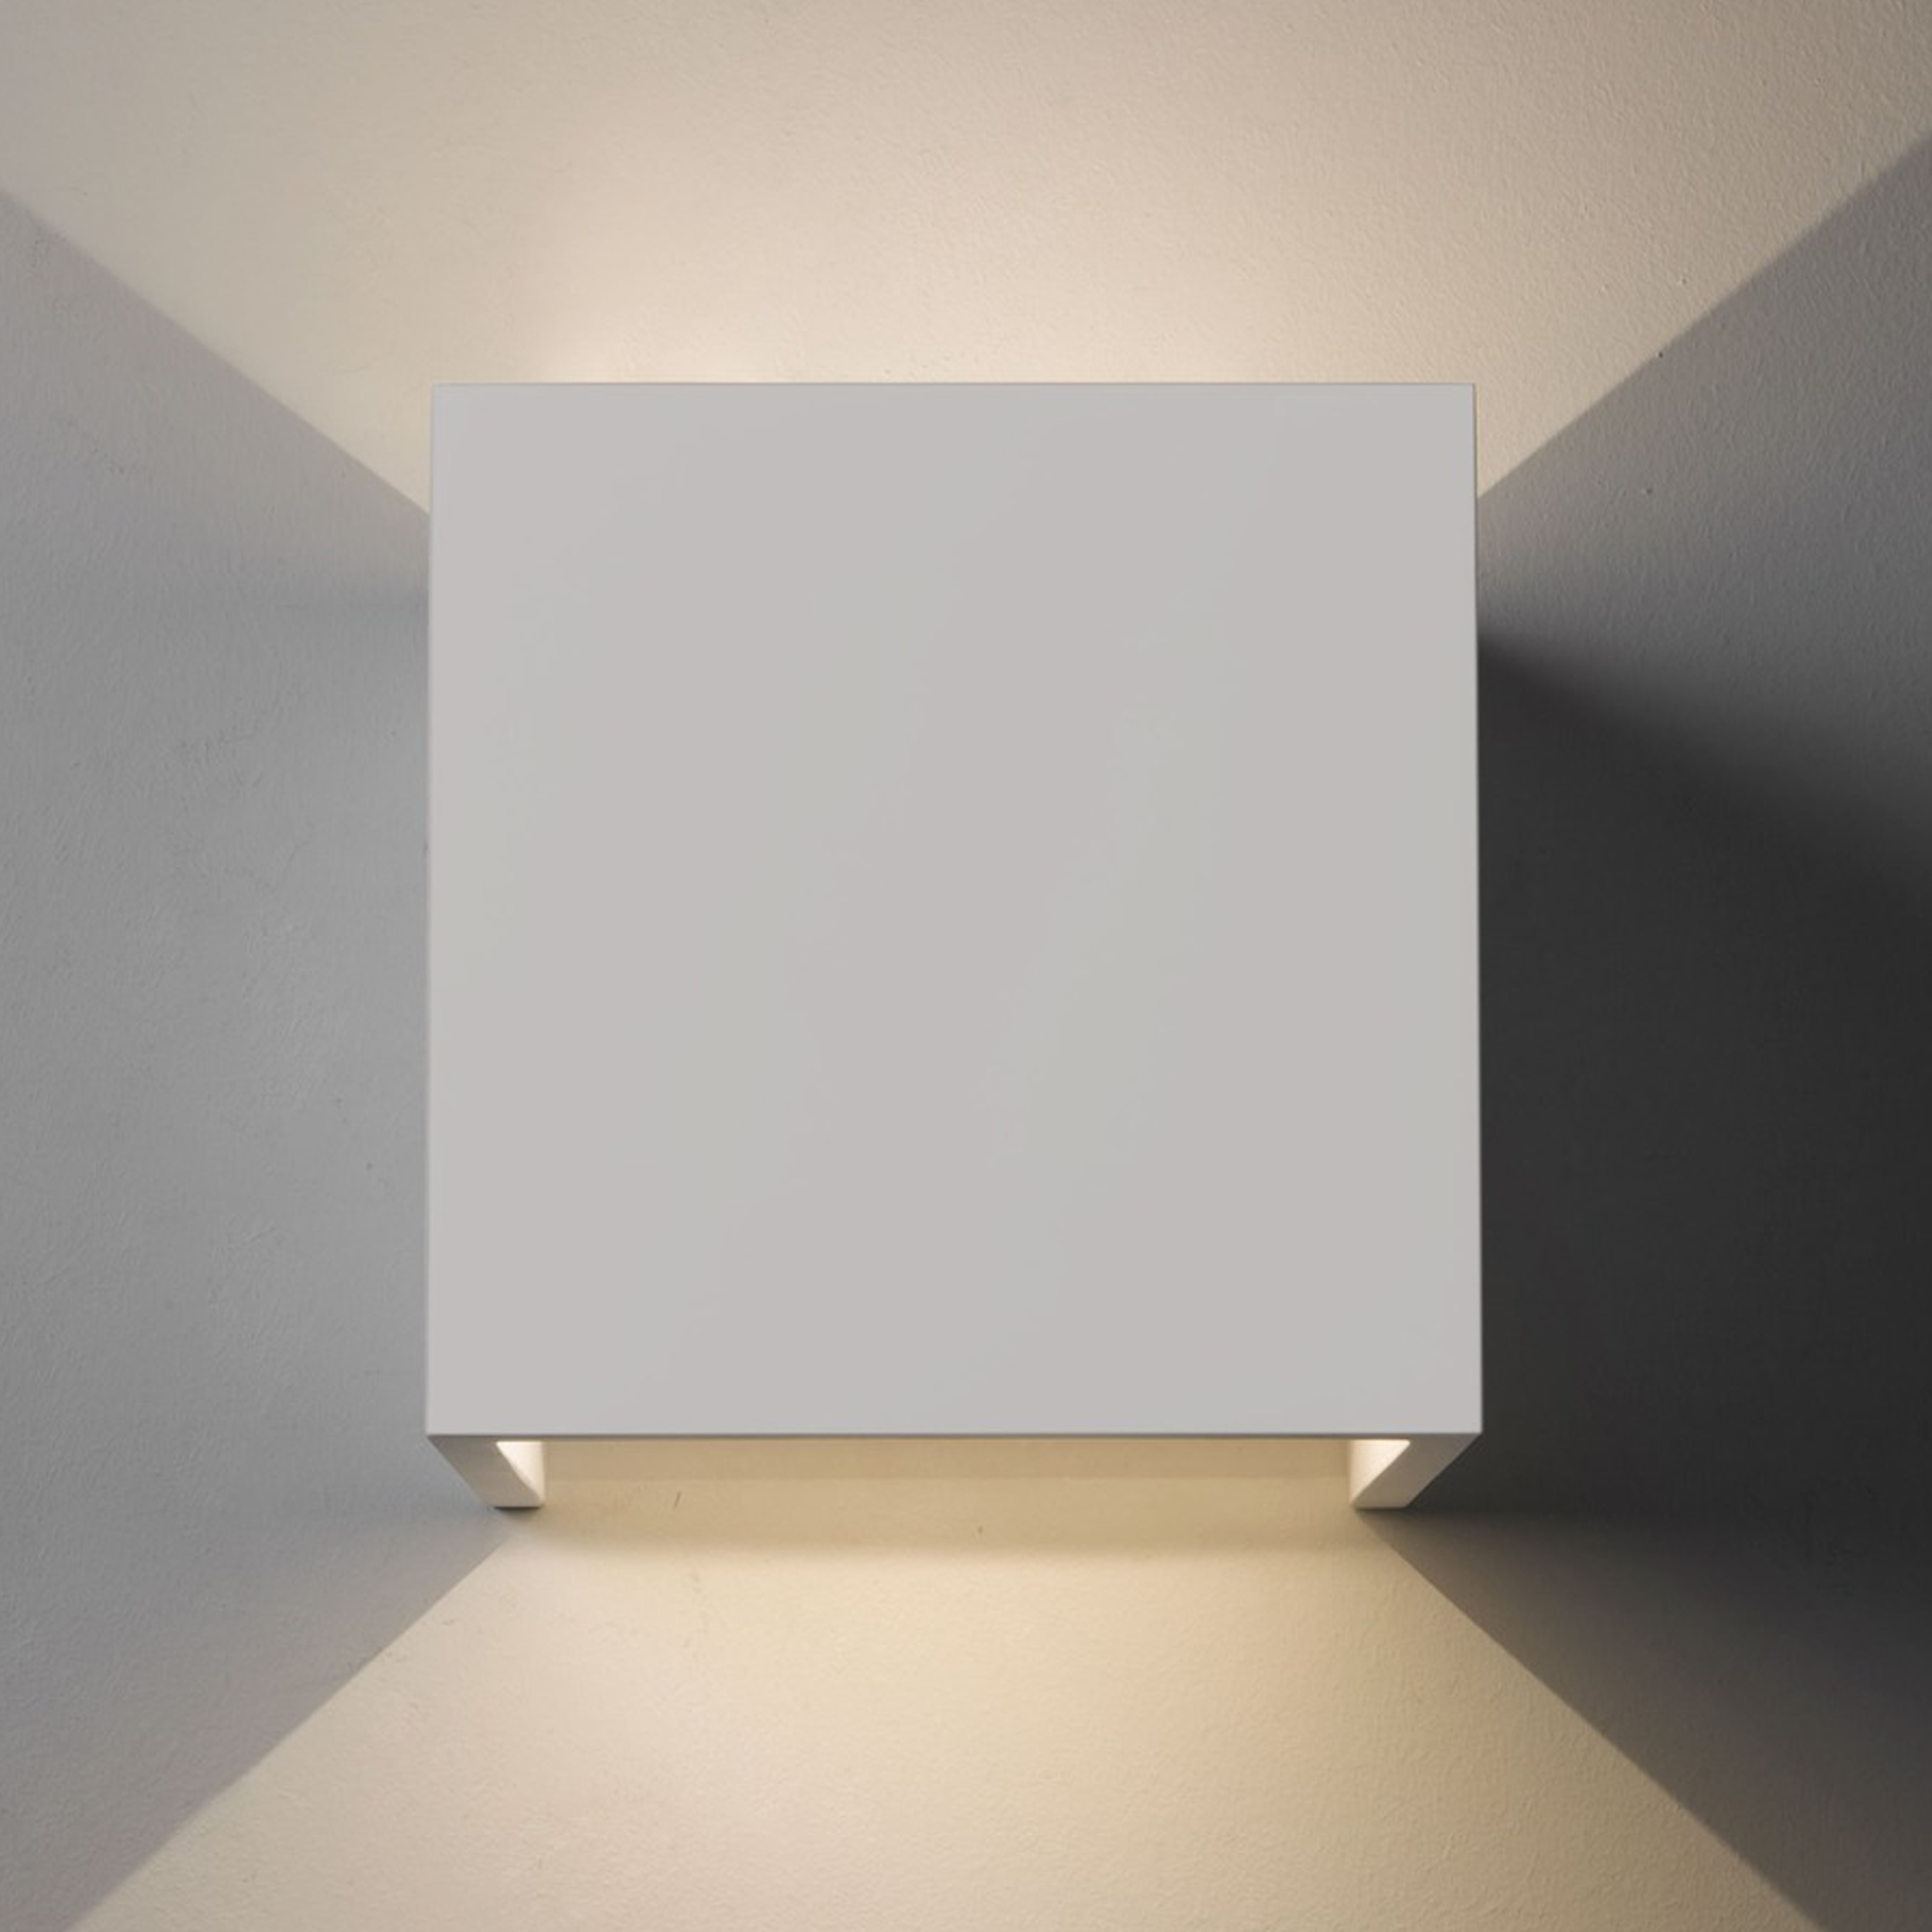 Astro Pienza Led Wall Light Plaster 2700k